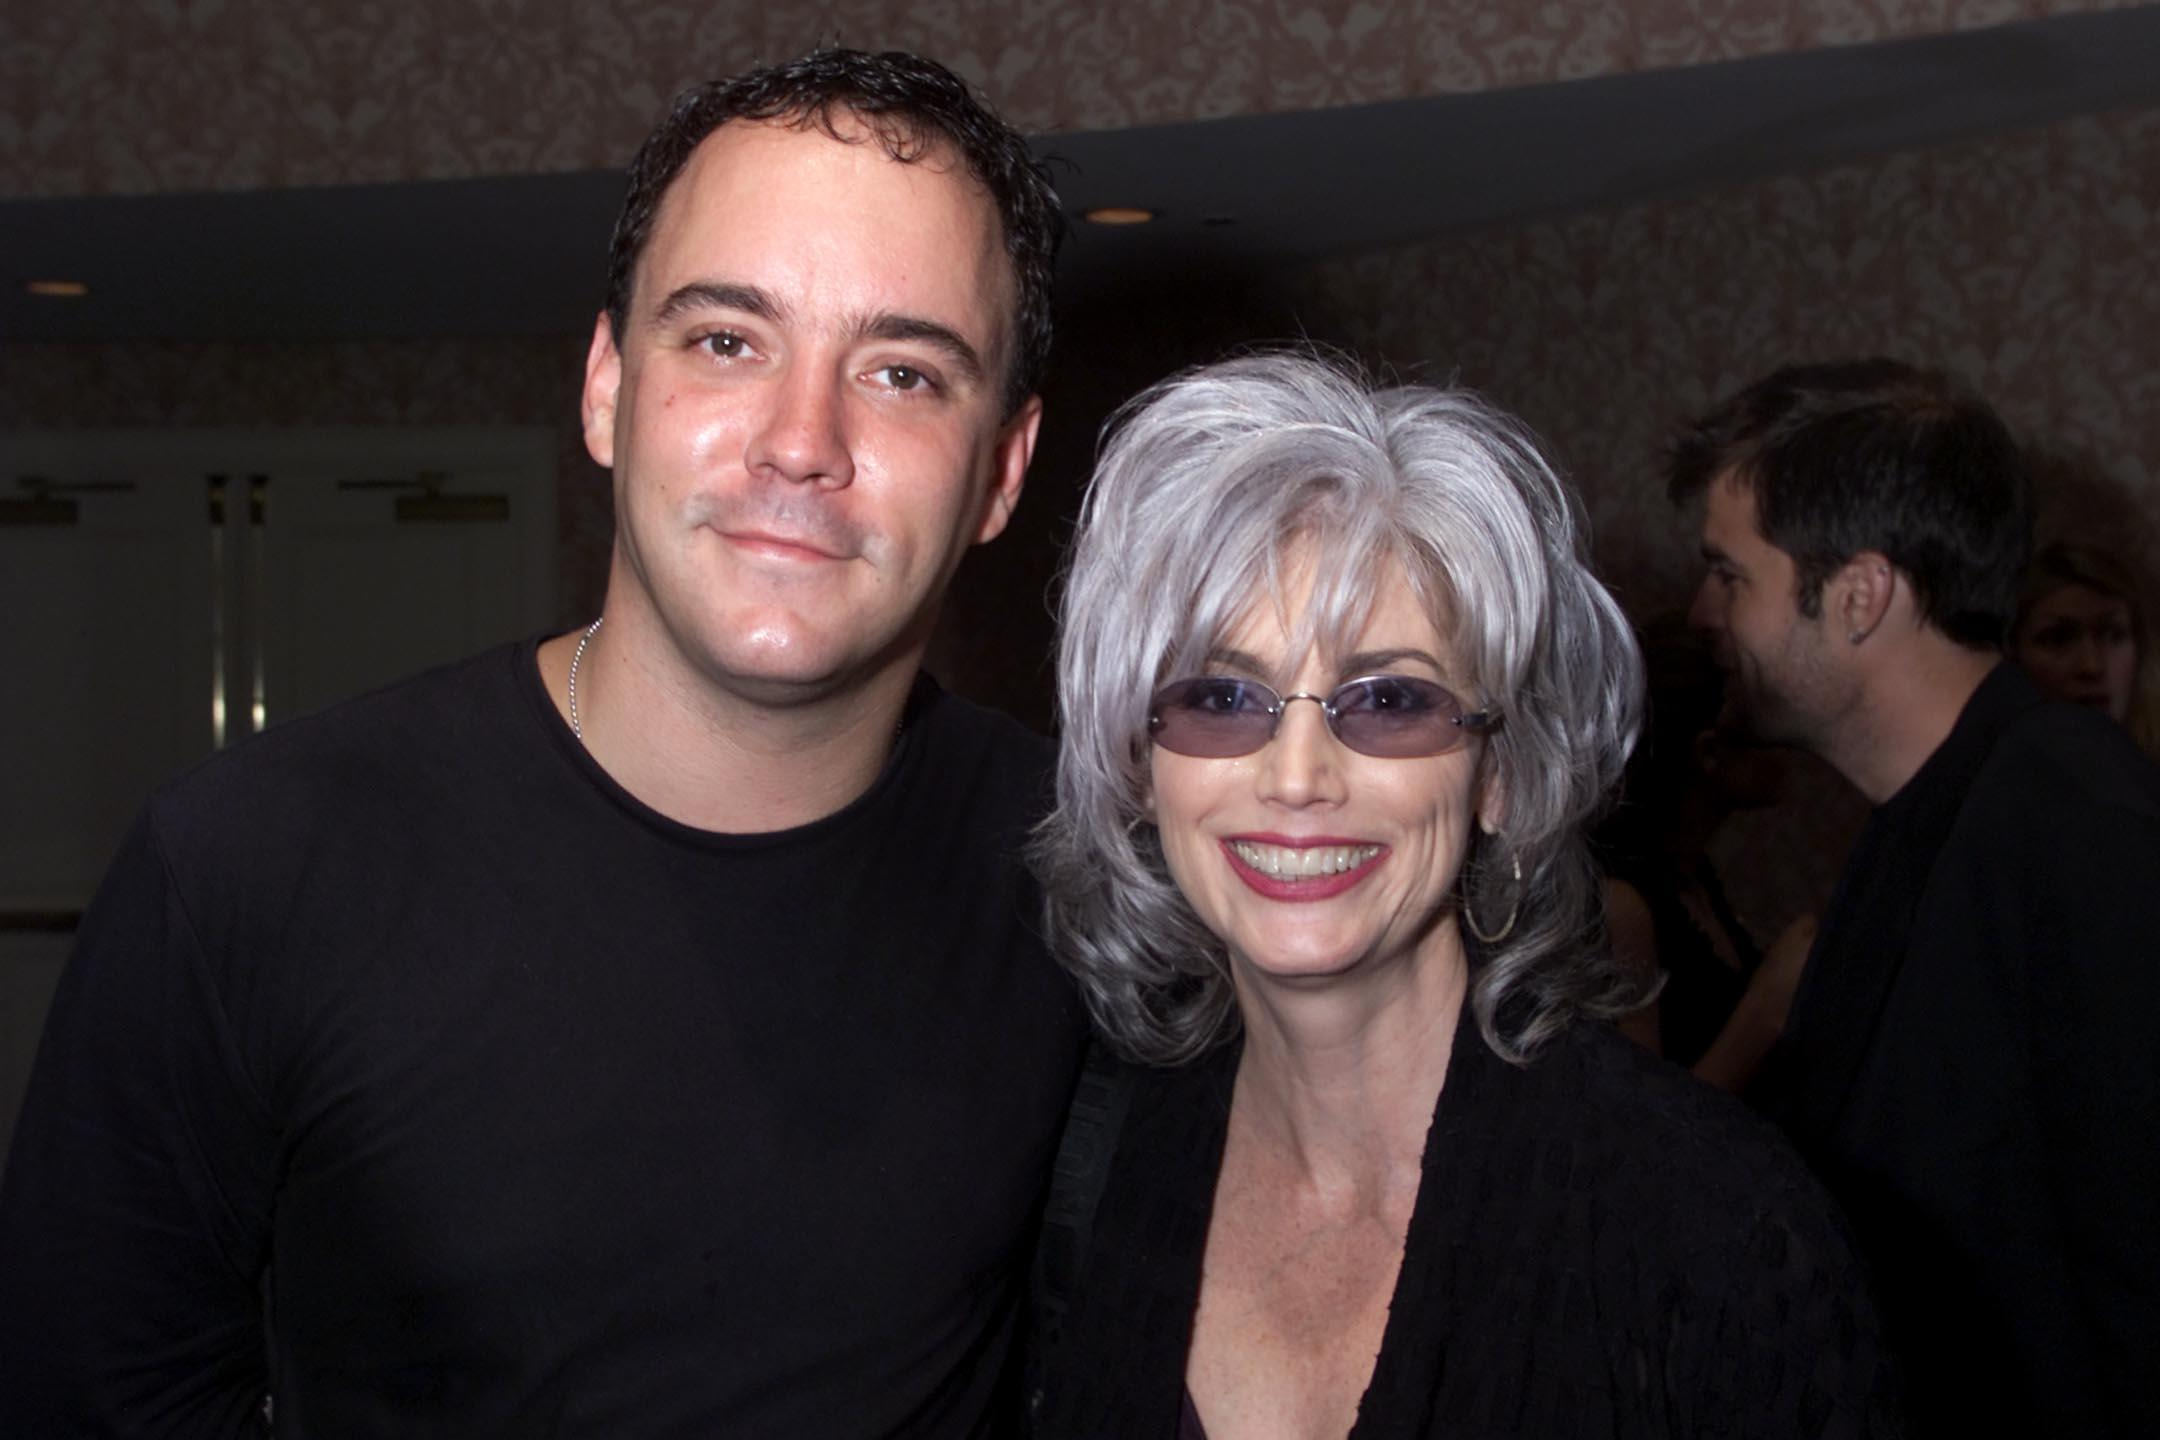 Dave Matthews and Emmylou Harris at the Songwriters Hall of Fame 32nd Annual Awards.